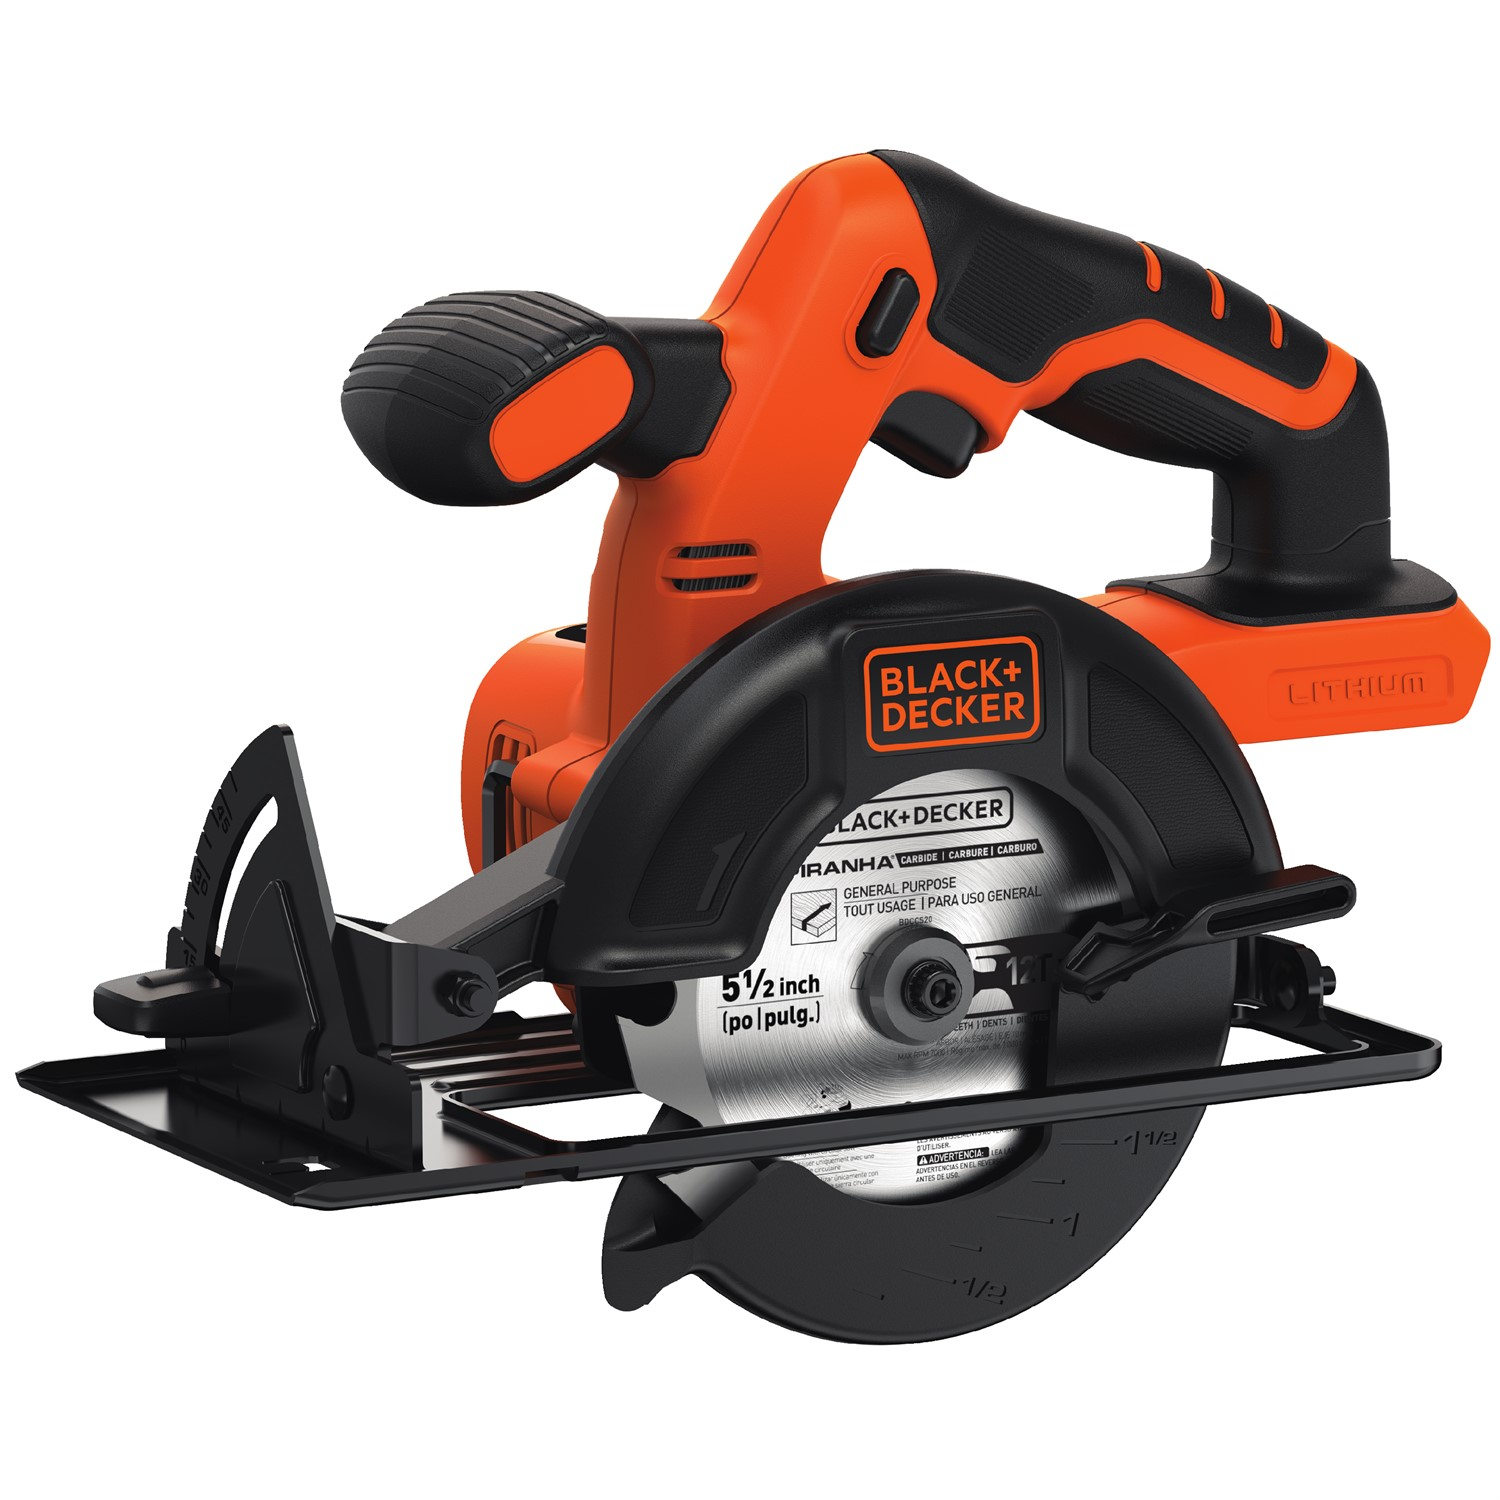 BLACK+DECKER 20-Volt Max Lithium-Ion Cordless 5-1/2-Inch Circular Saw, Bare Tool (No Battery), Bdccs20B